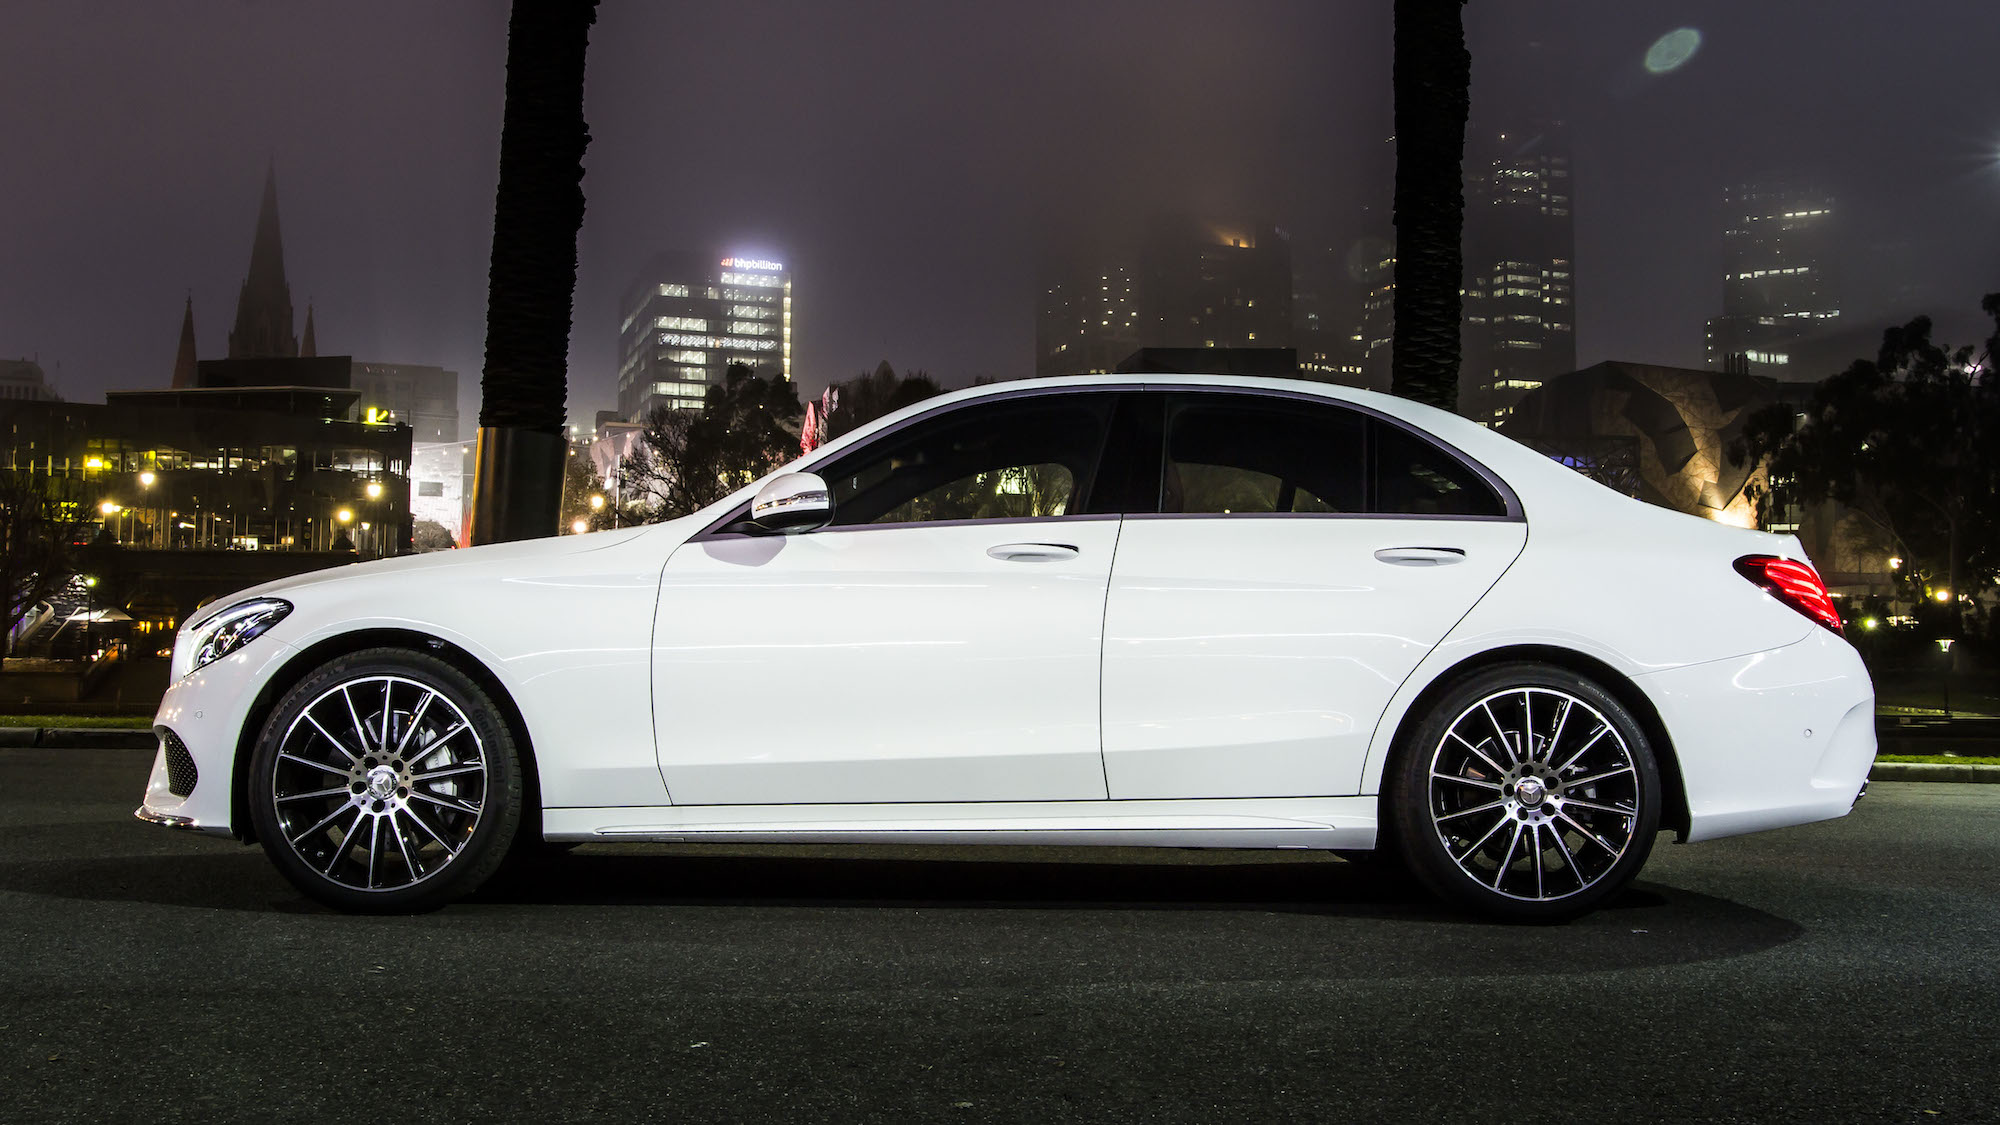 2015 mercedes benz c250 review caradvice for Mercedes benz c250 2017